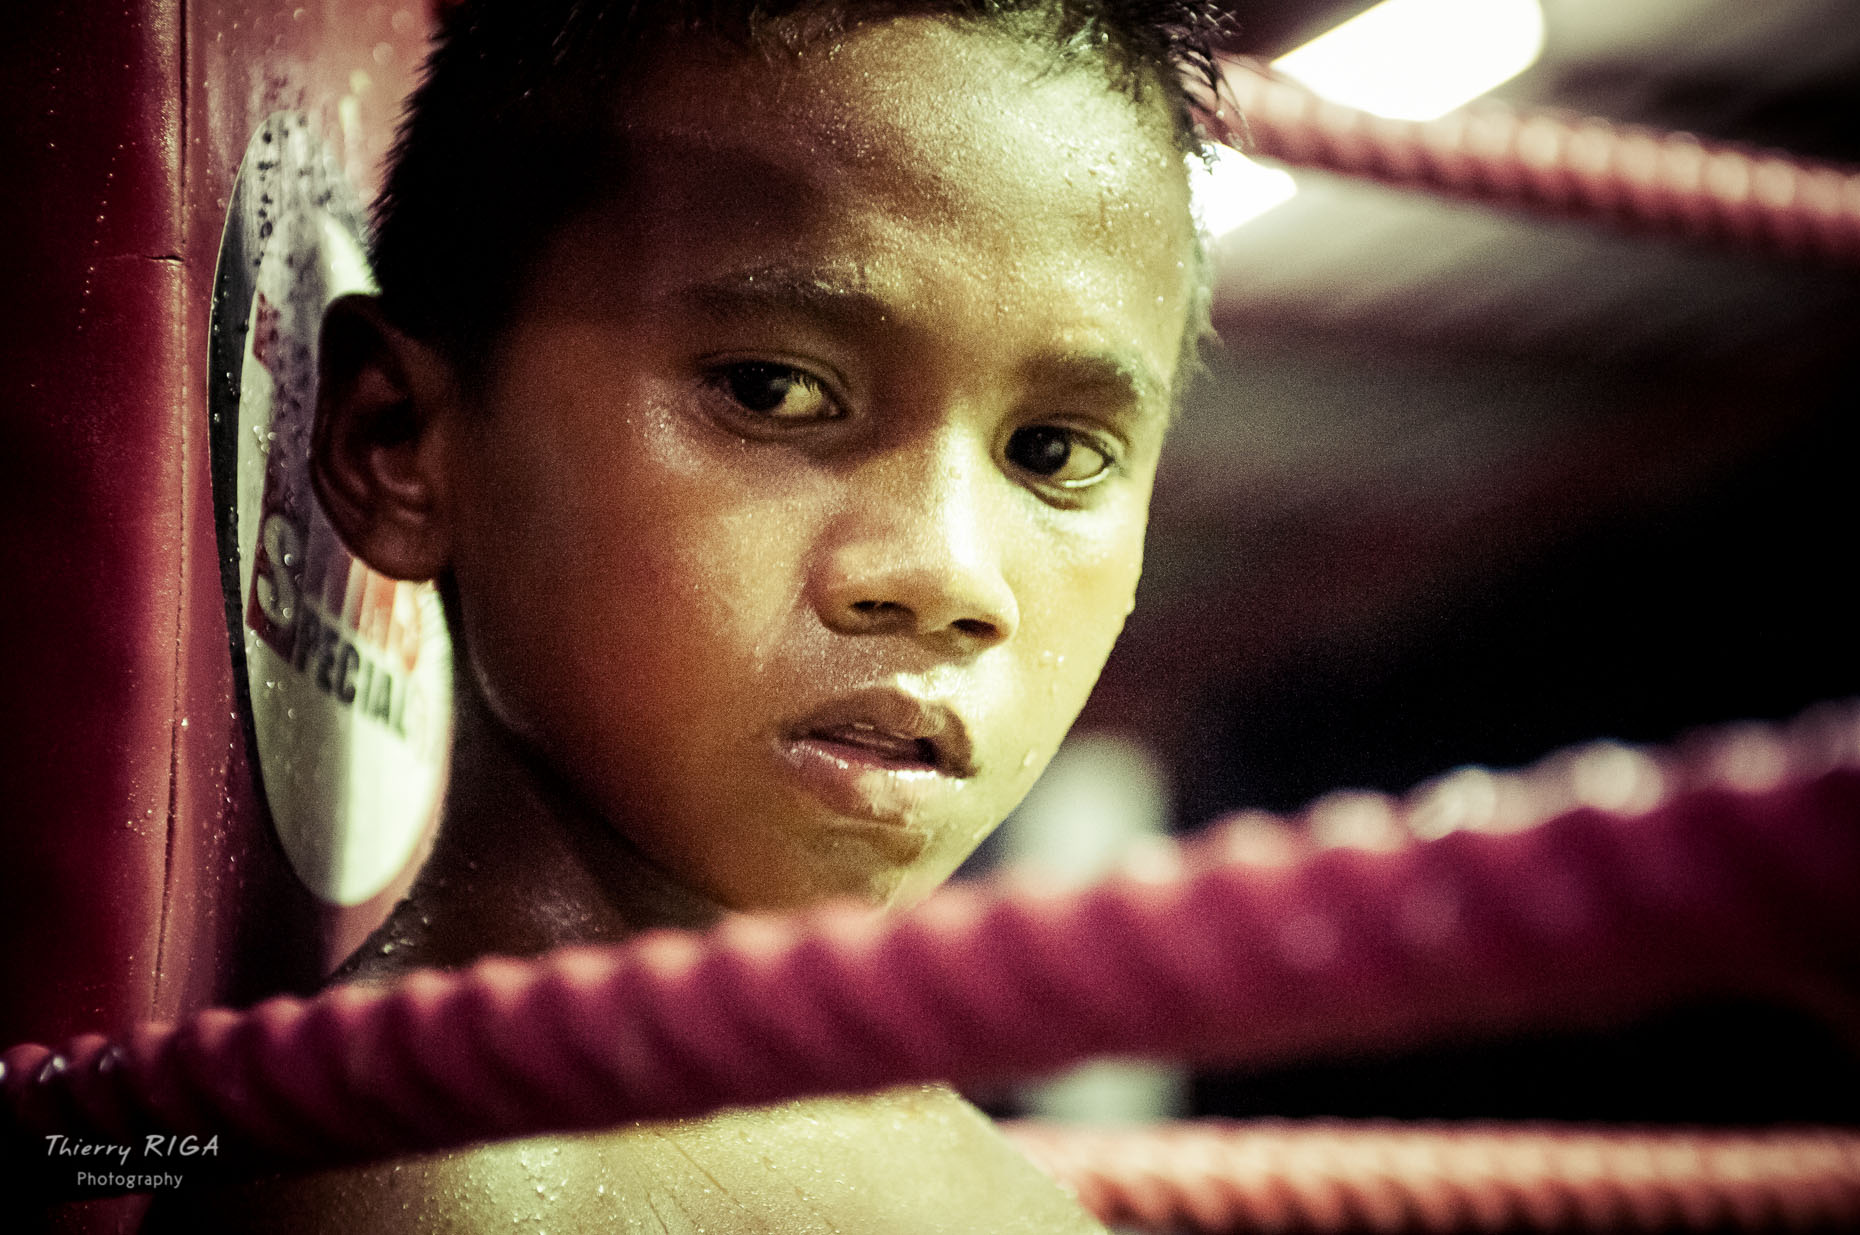 Muay Thai boxing face kid thailand